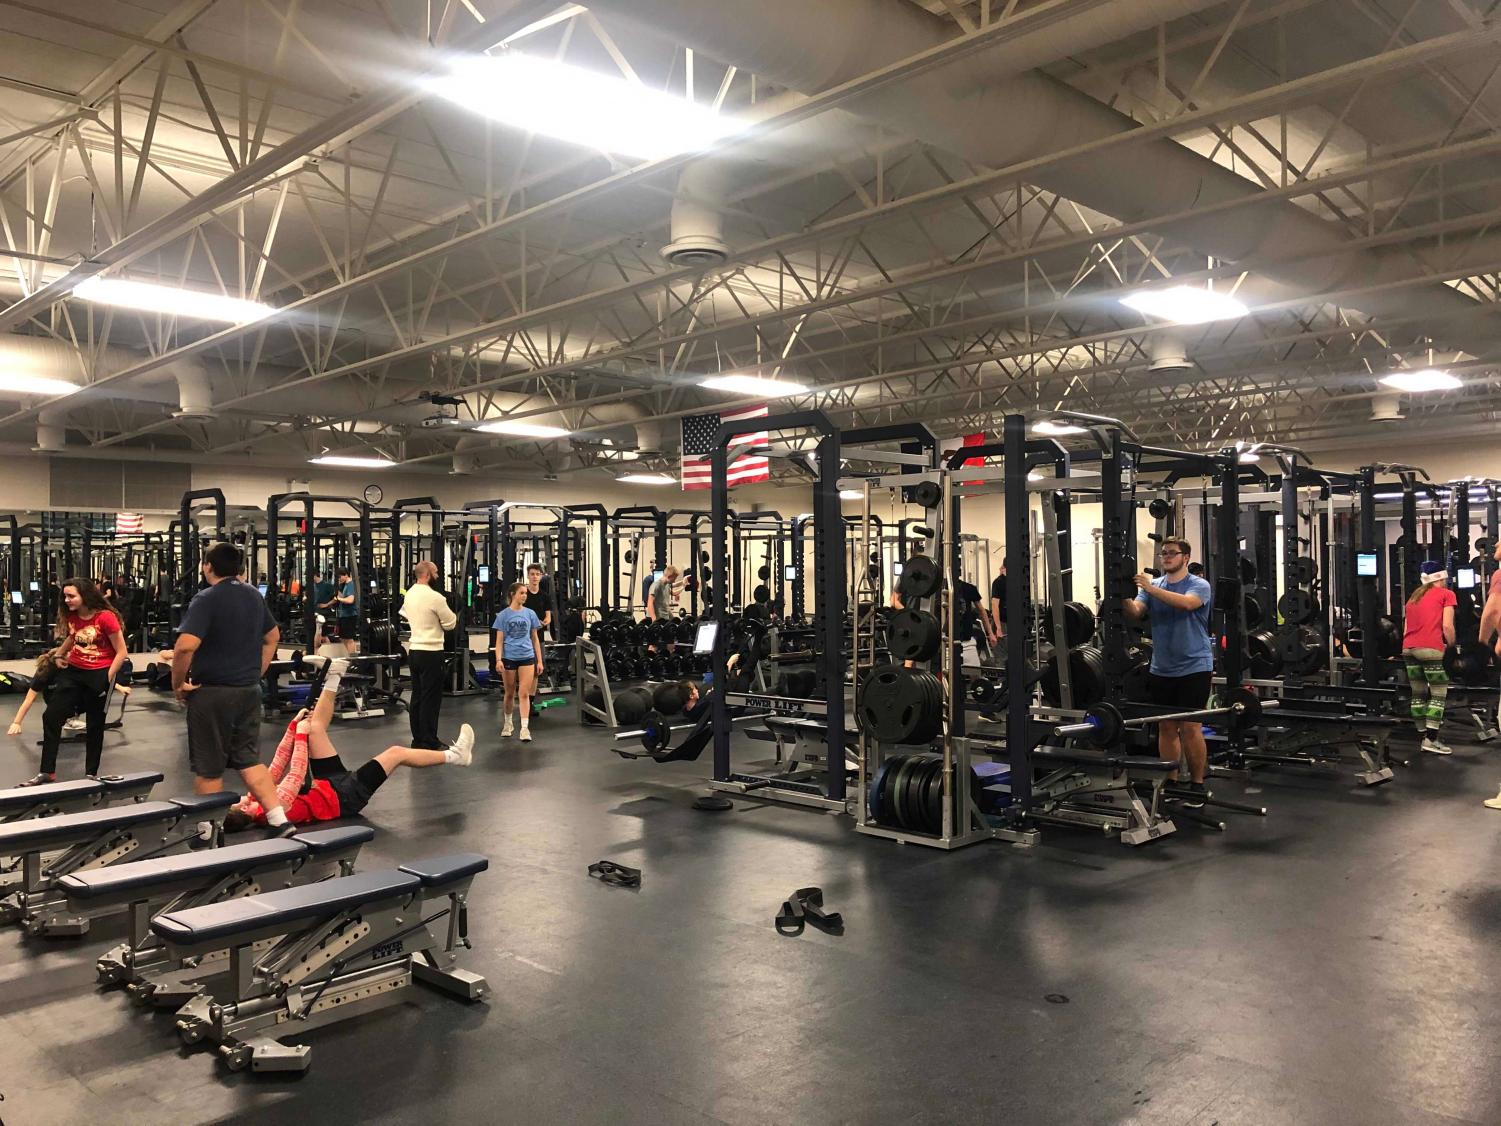 View of the weight room at Pleasant Valley where acceleration takes place